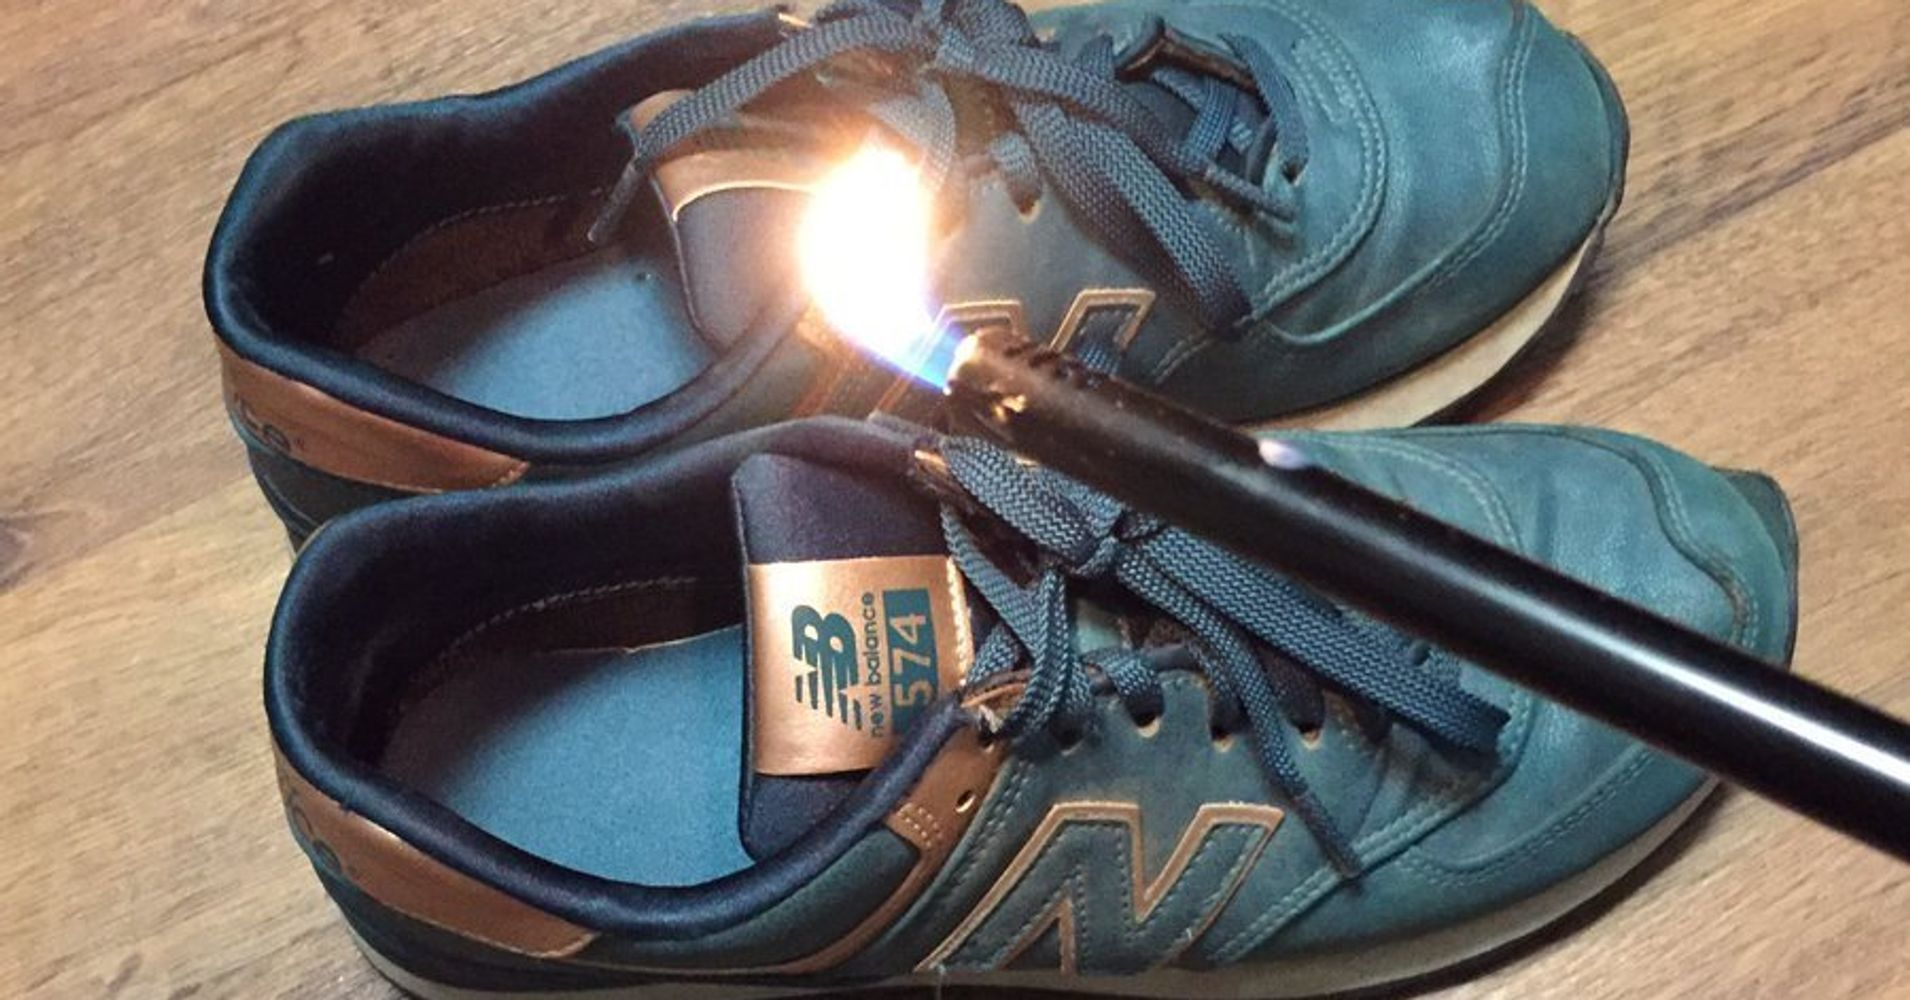 new balance shoes racist jokes about obama